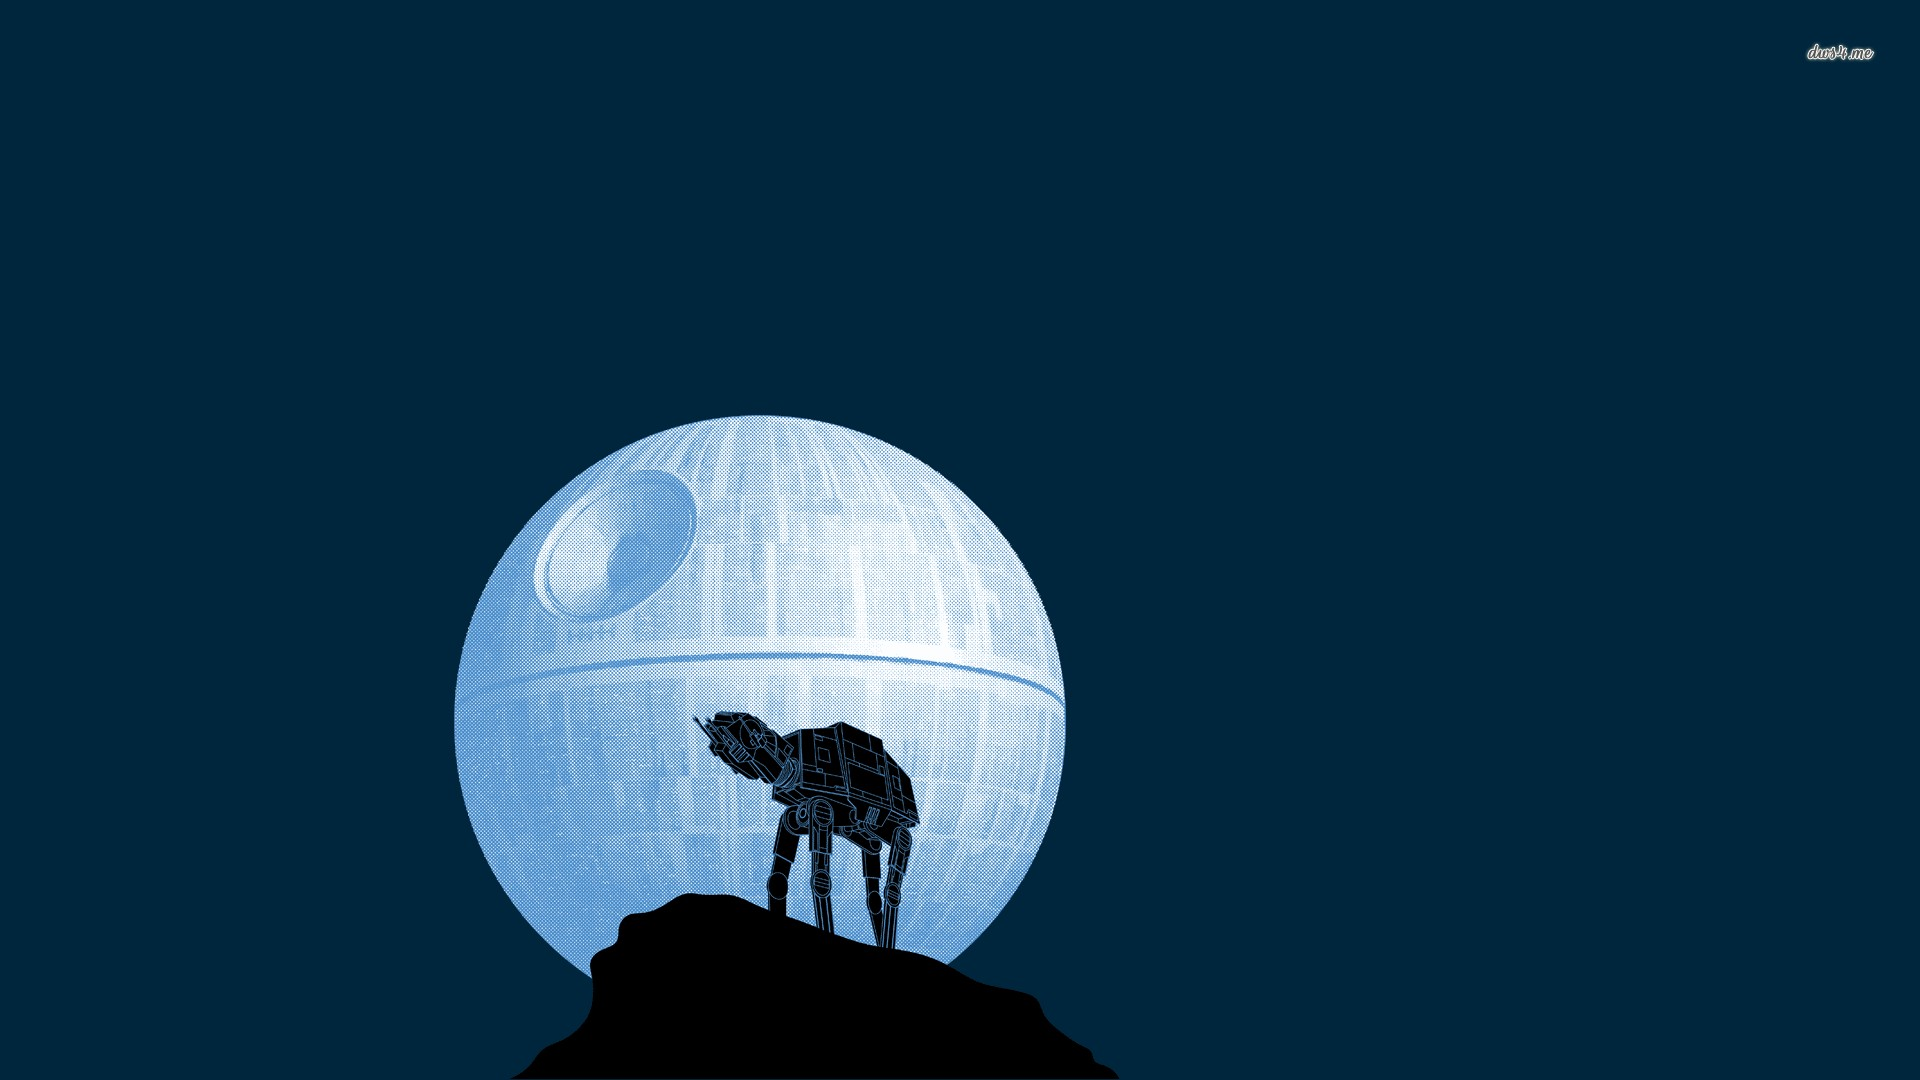 Death Star wallpaper ·â' Download free stunning wallpapers for